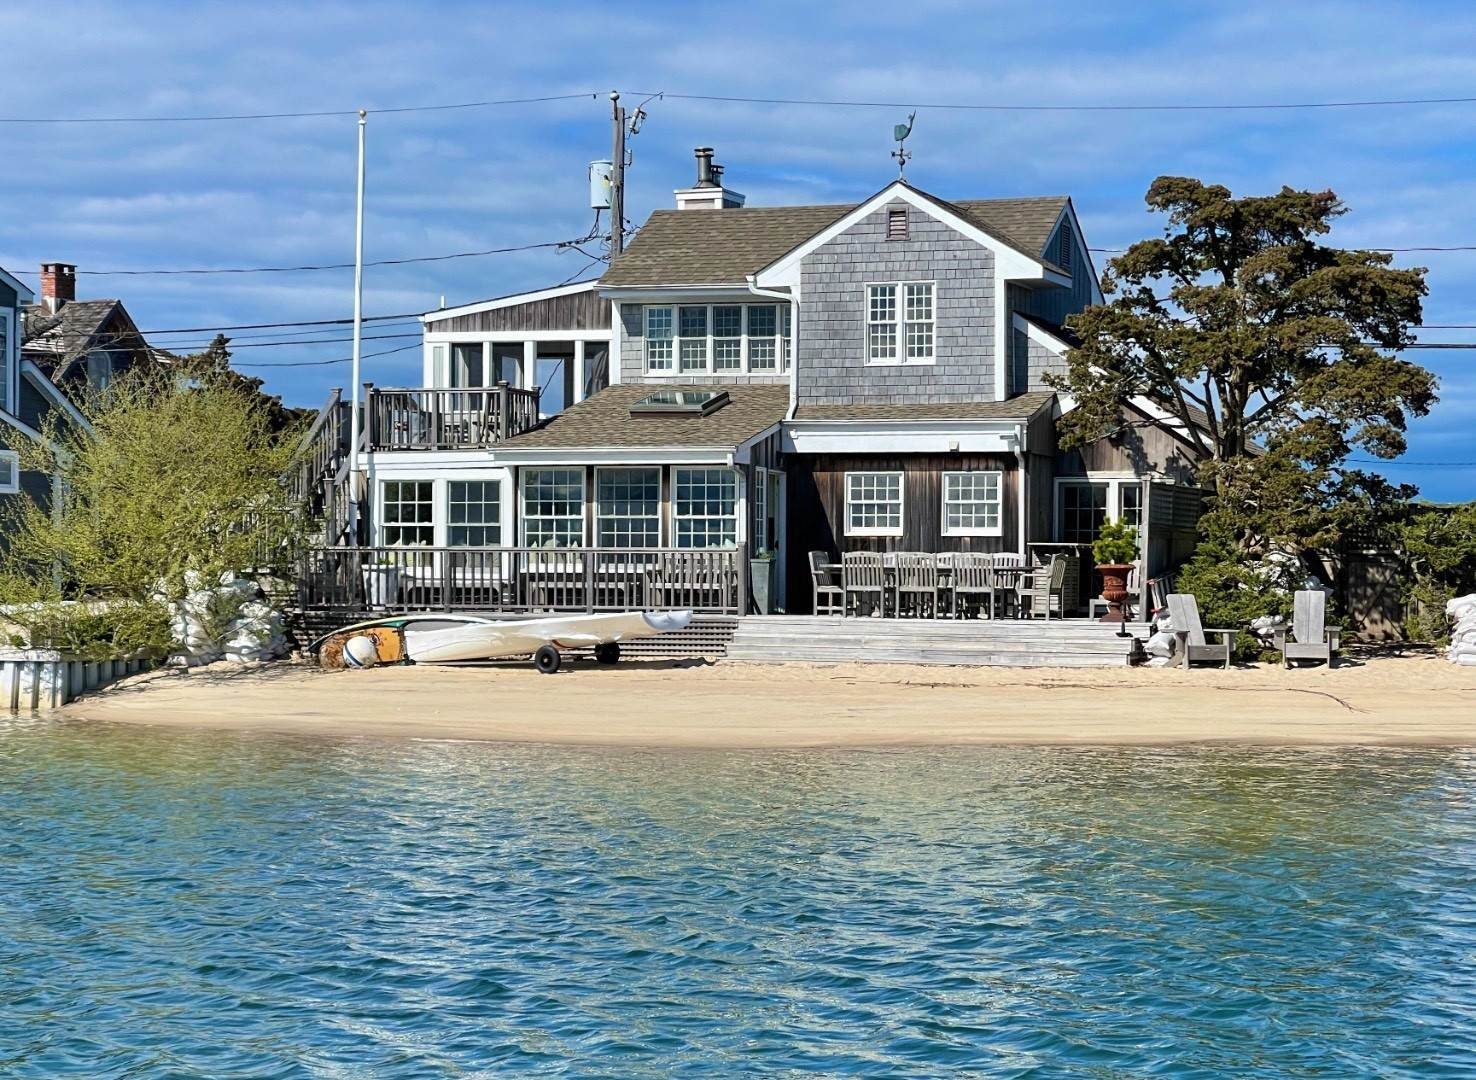 Single Family Home for Sale at Chic Three Bedroom Waterfront With Private Sandy Beach 278 Towd Point Road, Southampton, NY 11968